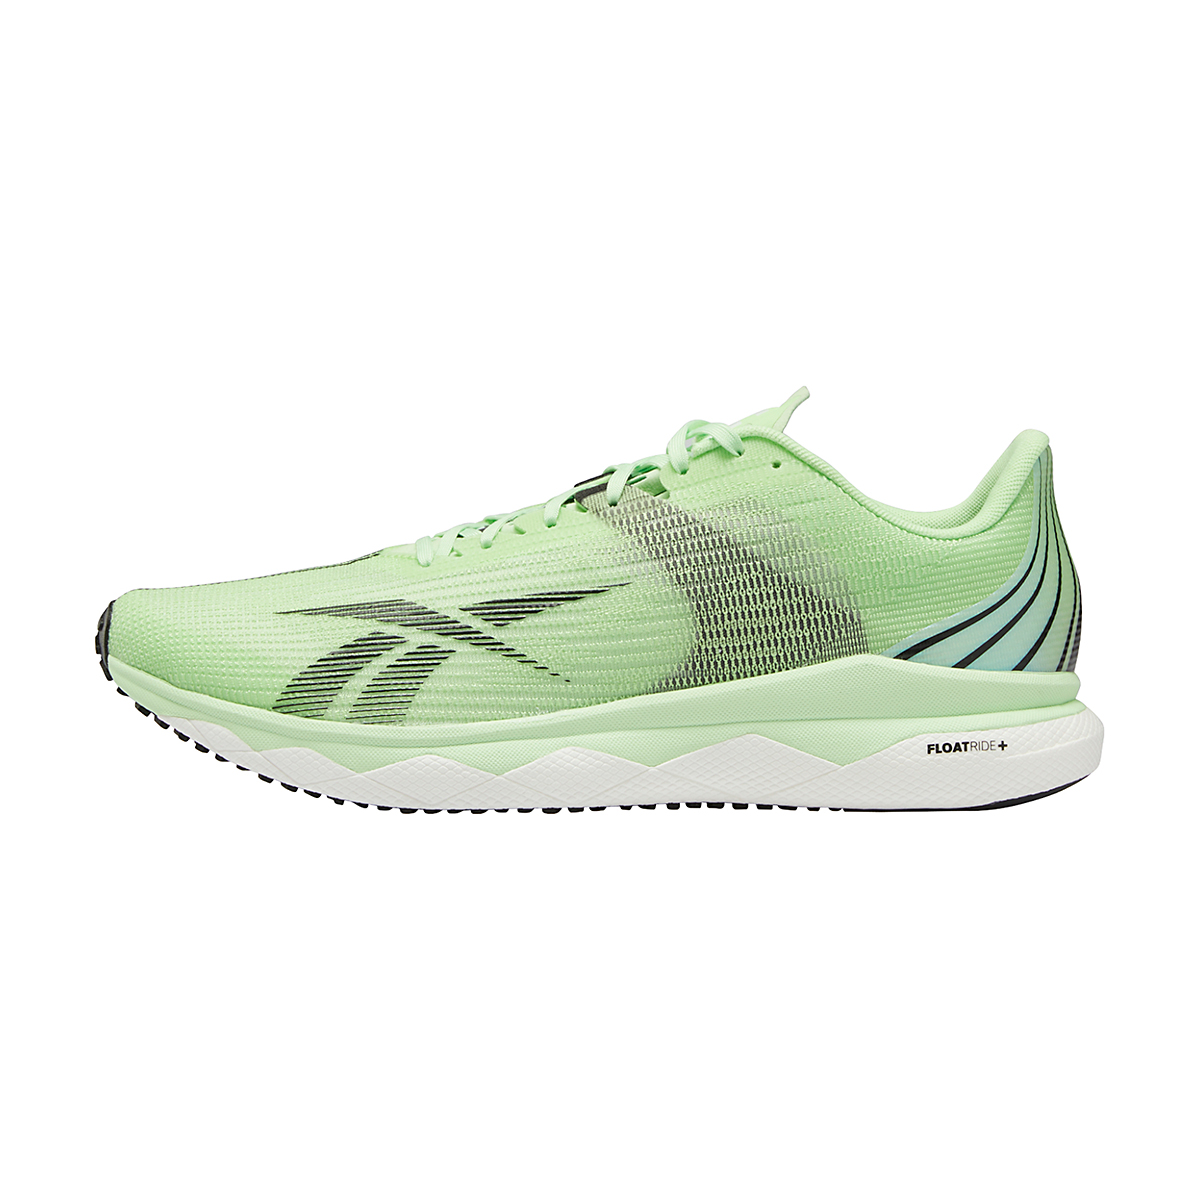 Men's Reebok Floatride Run Fast 3.0 Running Shoe - Color: Neon Mint/White/Core Black - Size: 7 - Width: Regular, Neon Mint/White/Core Black, large, image 2